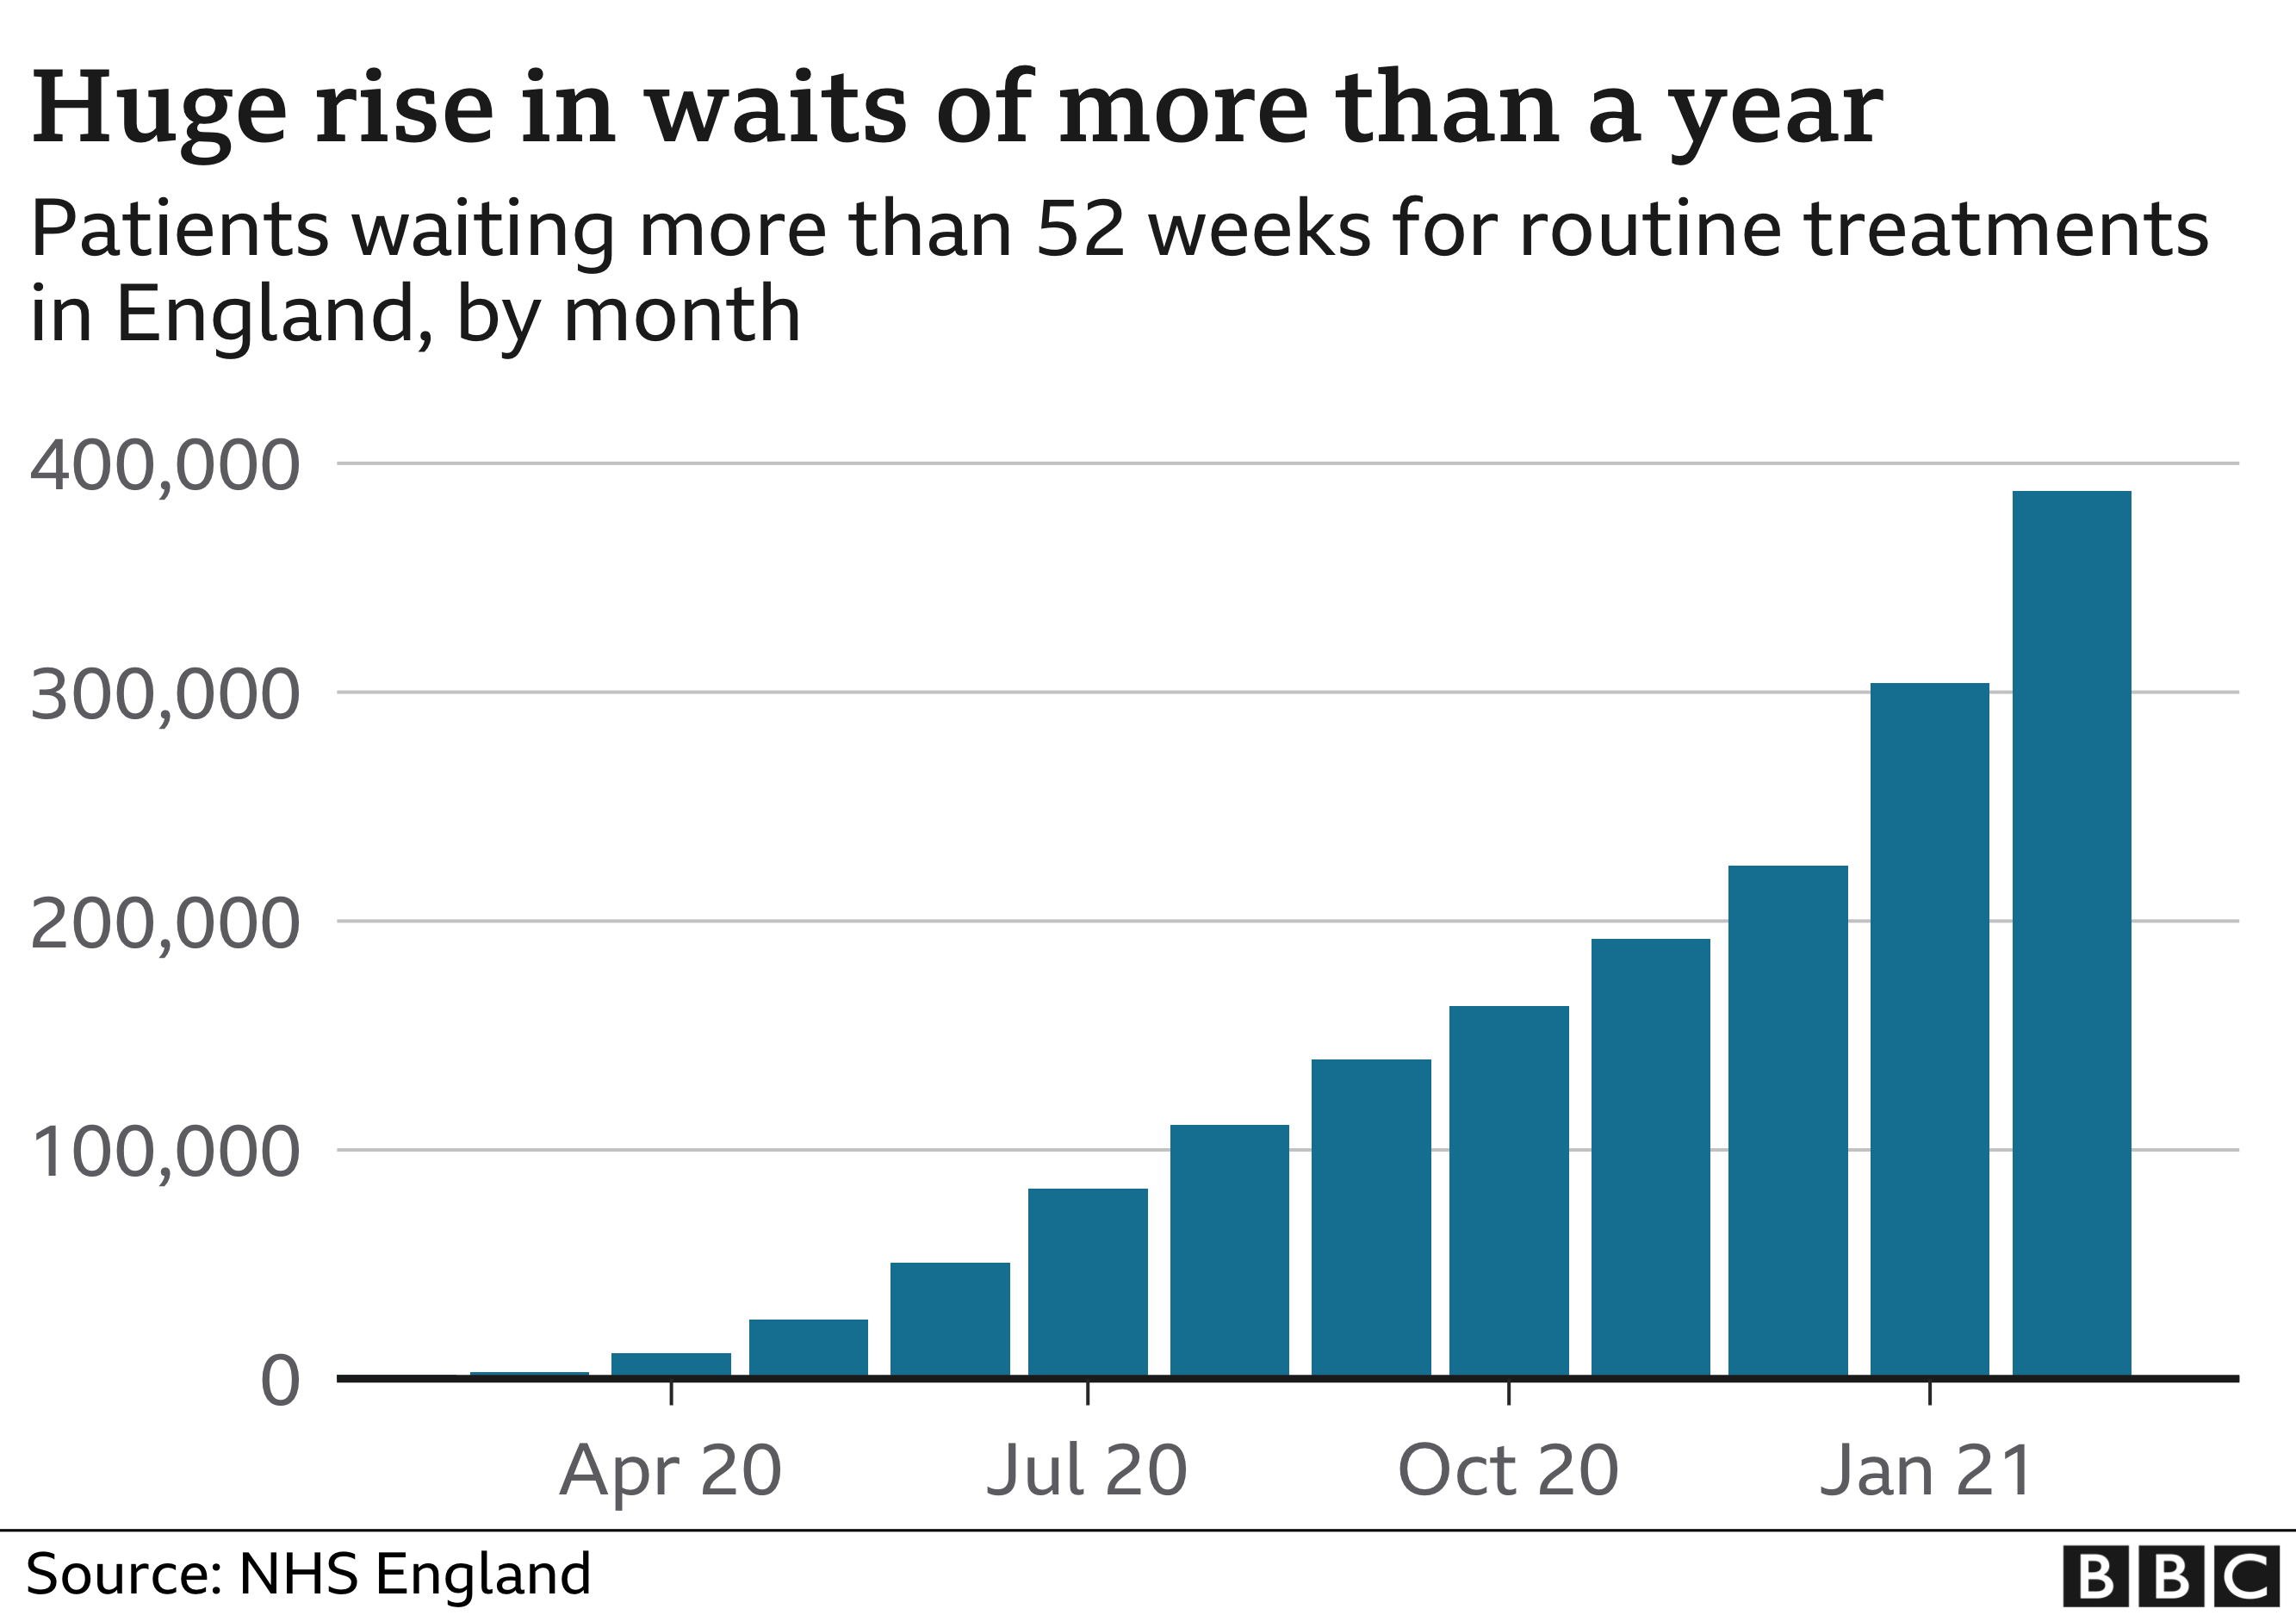 Hugh rise in patients waiting more than a year for routine operations